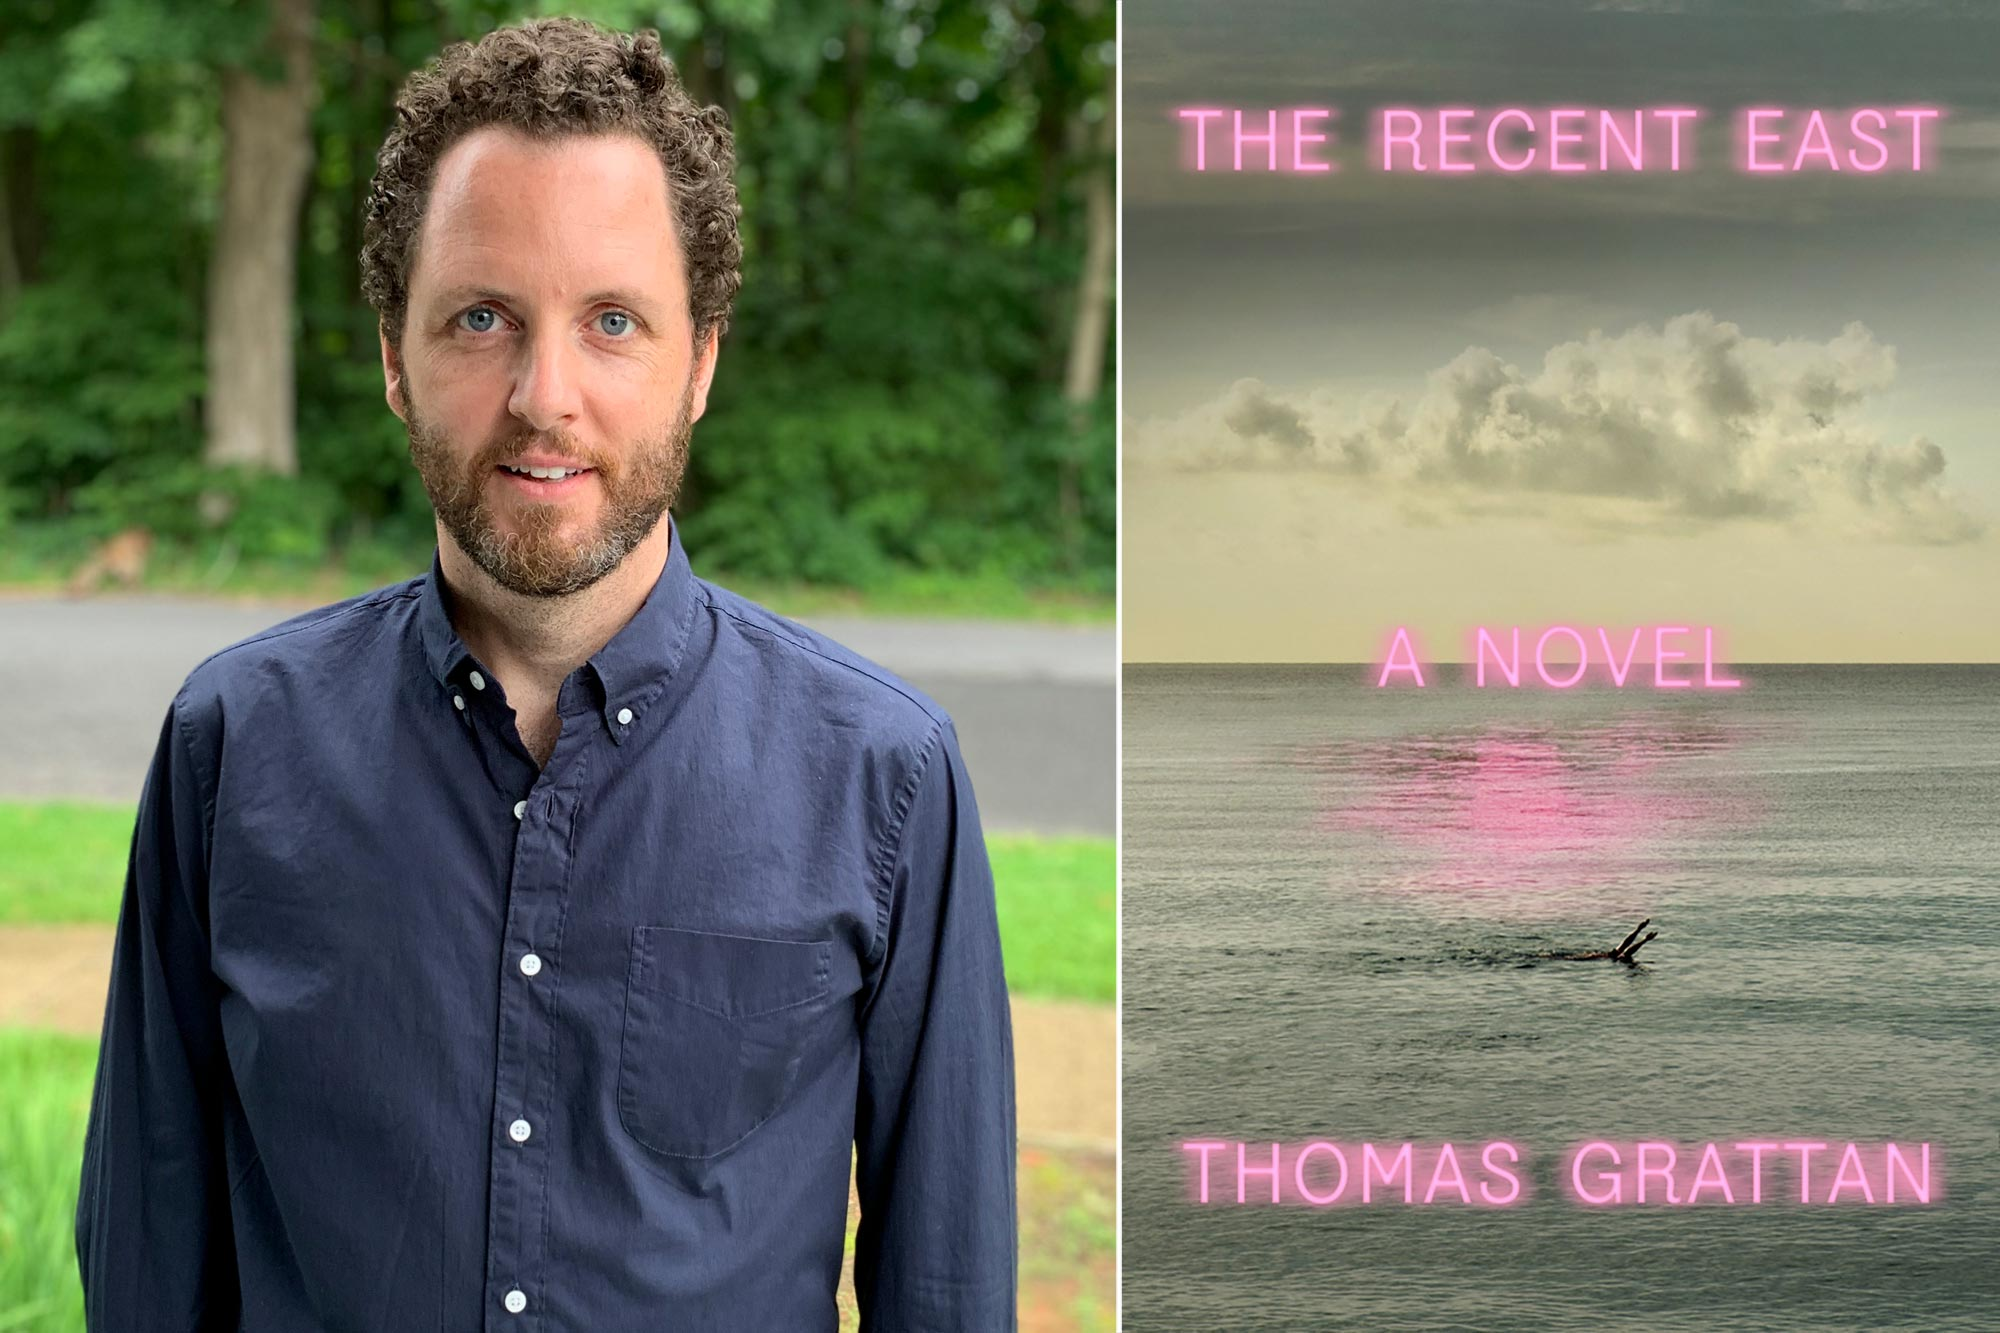 Thomas Grattan, The Recent East